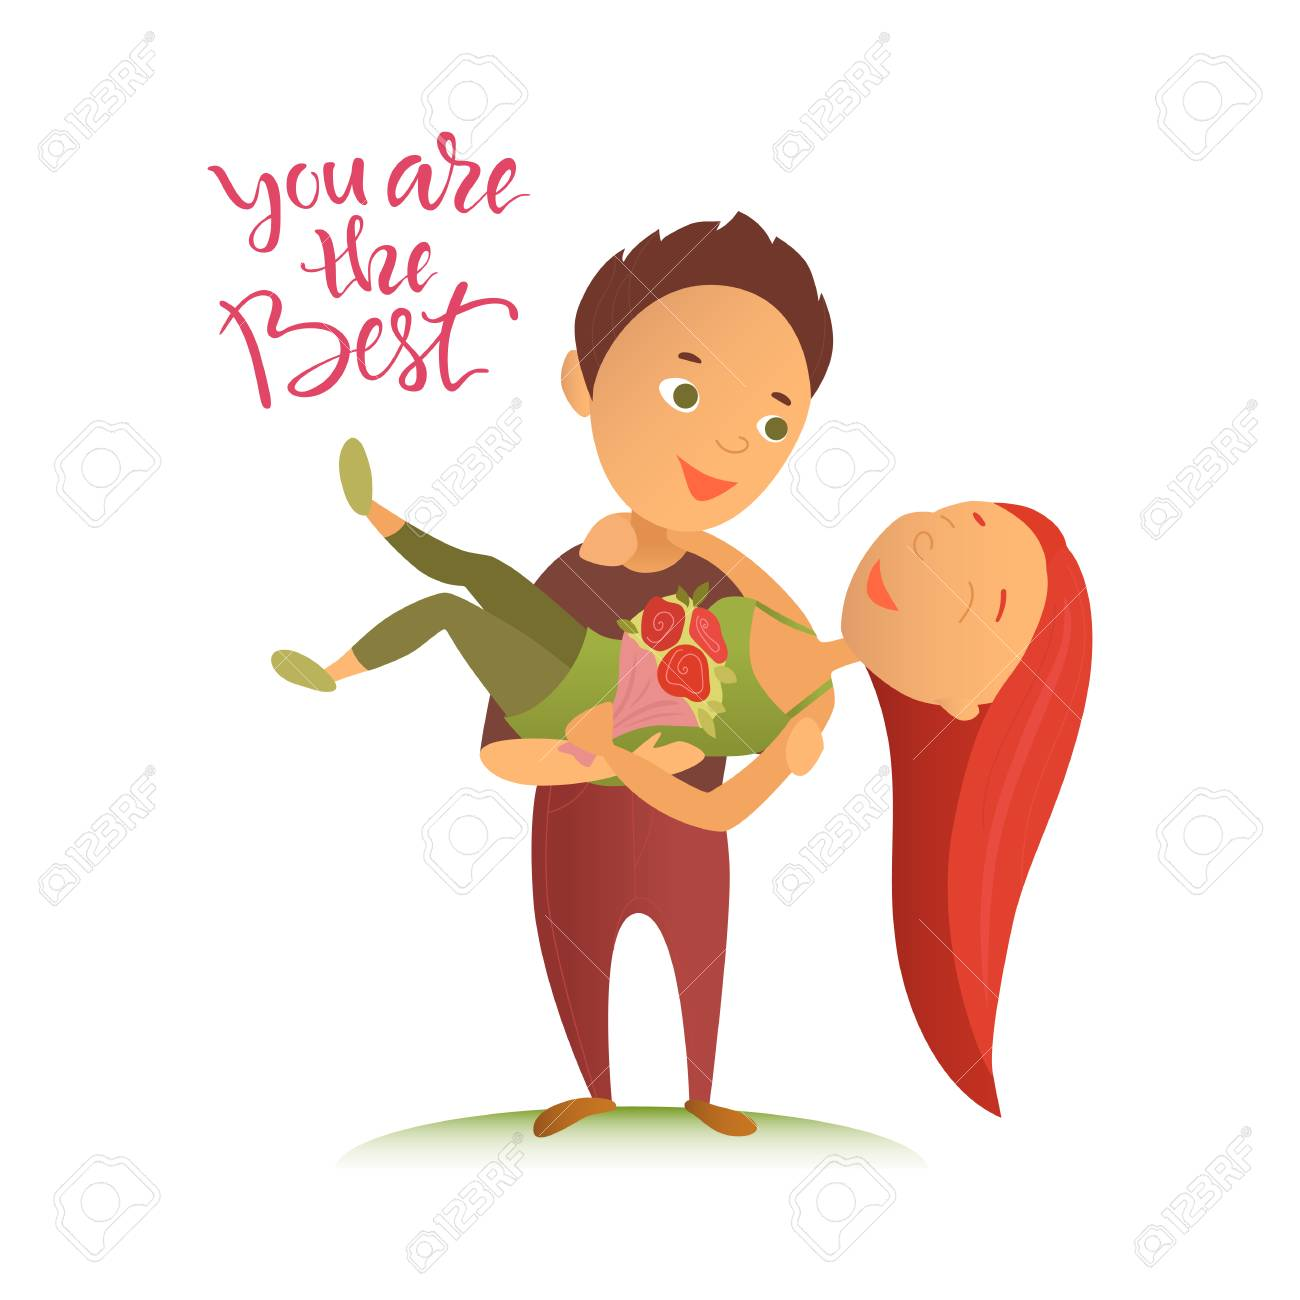 Vector illustration valentines day greeting card cartoon vector illustration valentines day greeting card cartoon characters lovers man and woman kristyandbryce Choice Image